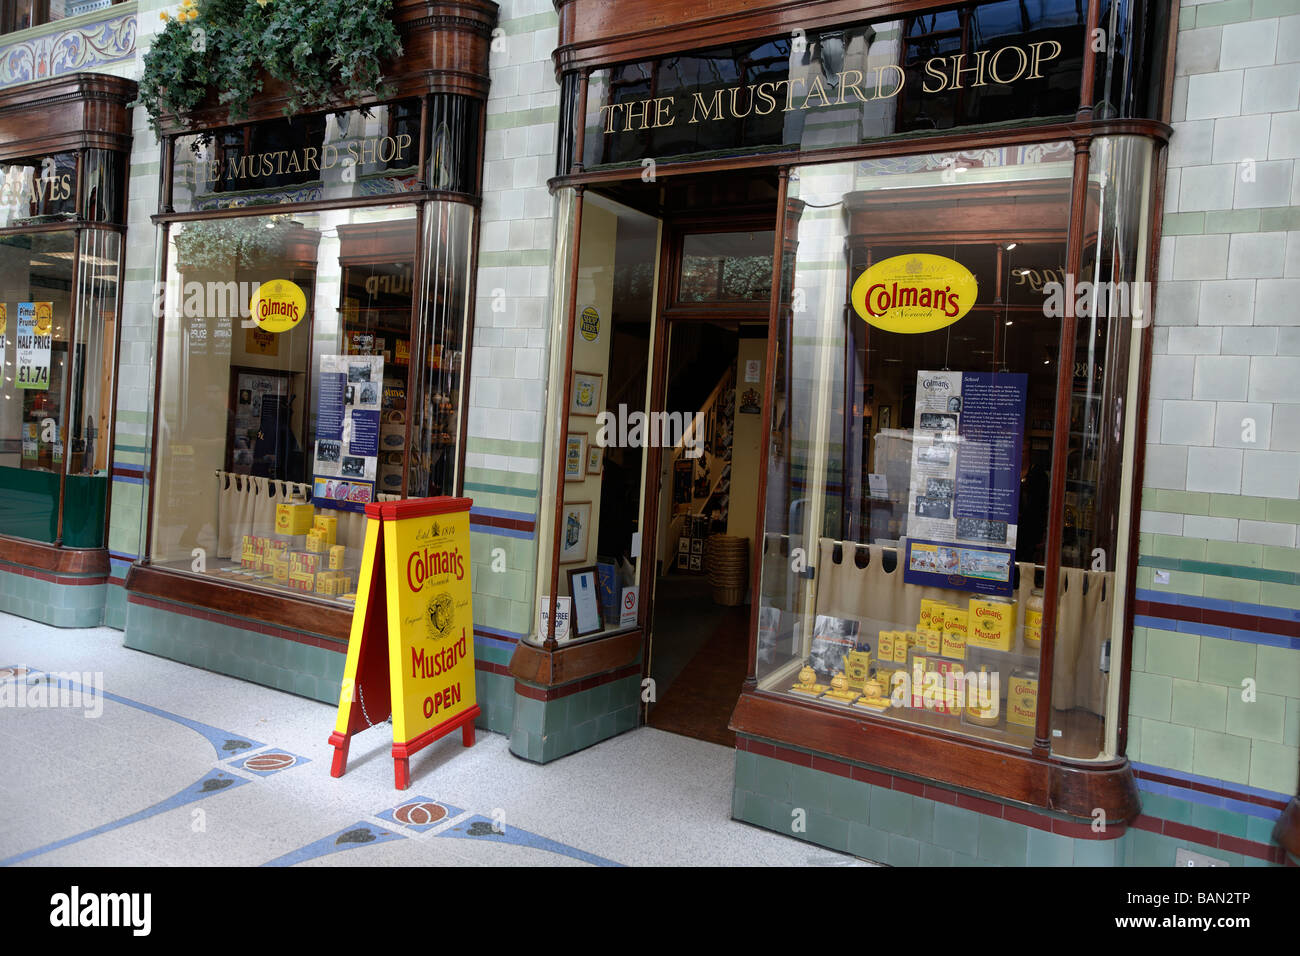 Colman's mustard shop Royal Arcade Norwich Norfolk England - Stock Image